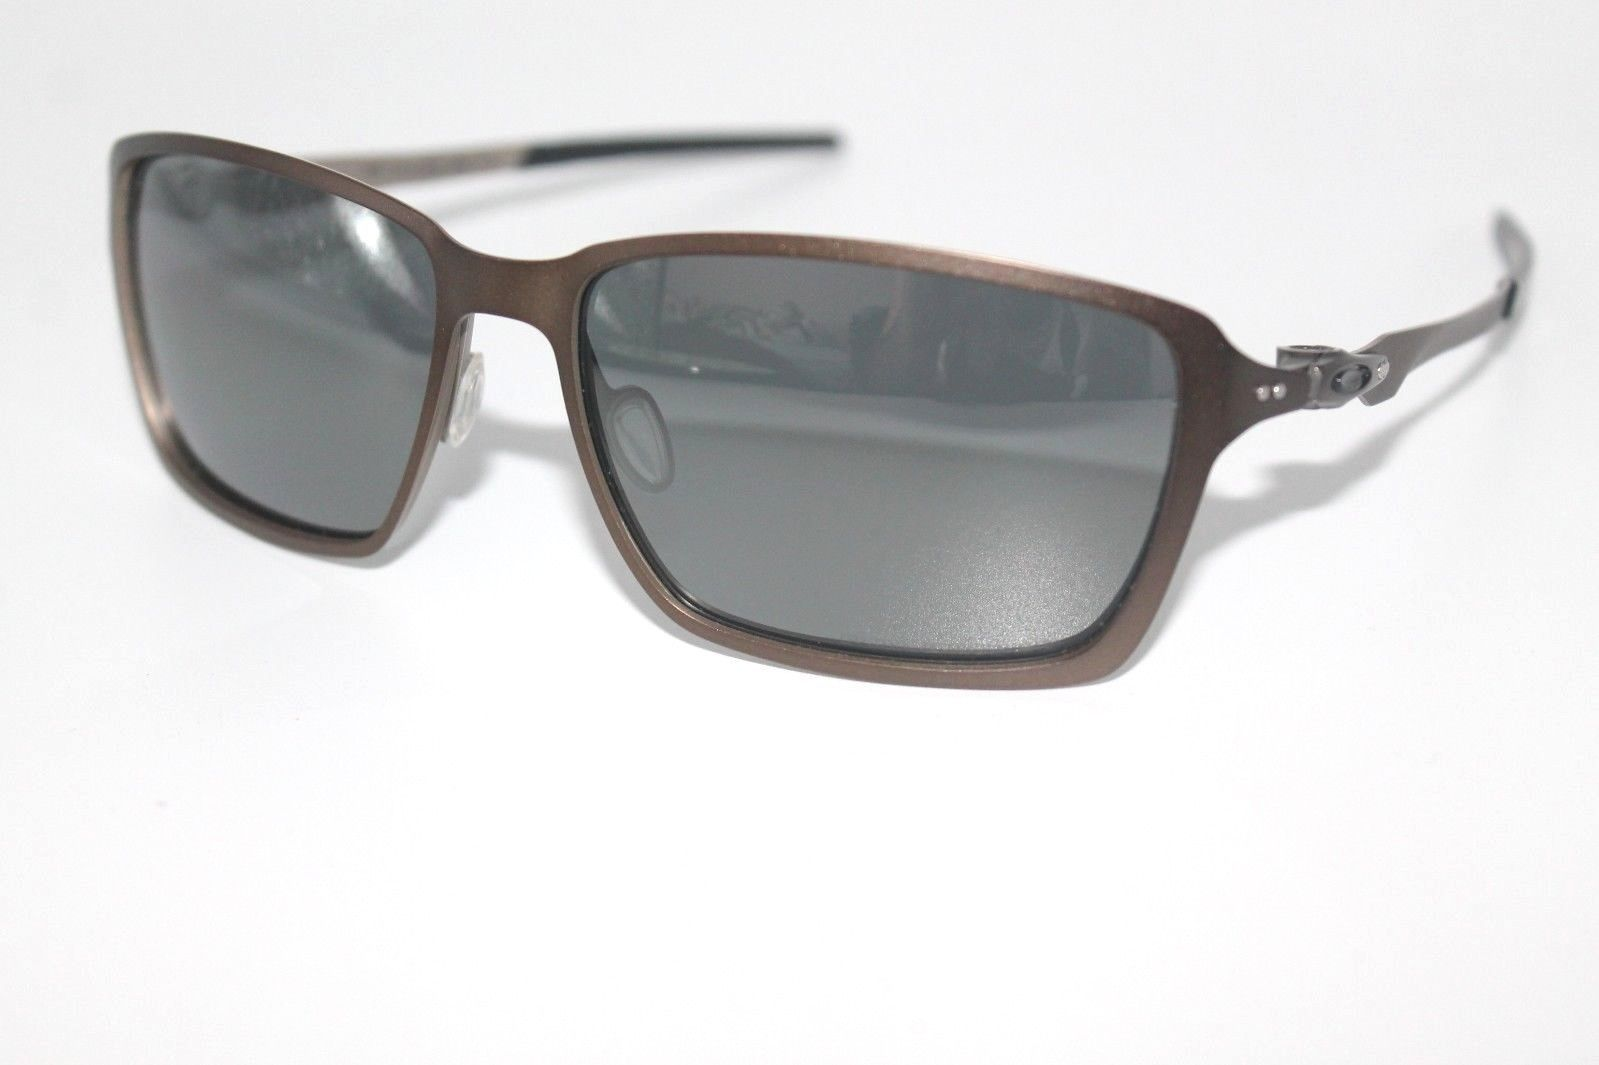 01b98d1a35a27 Oakley Tincan Sunglasses OO4082-06 Pewter and 50 similar items